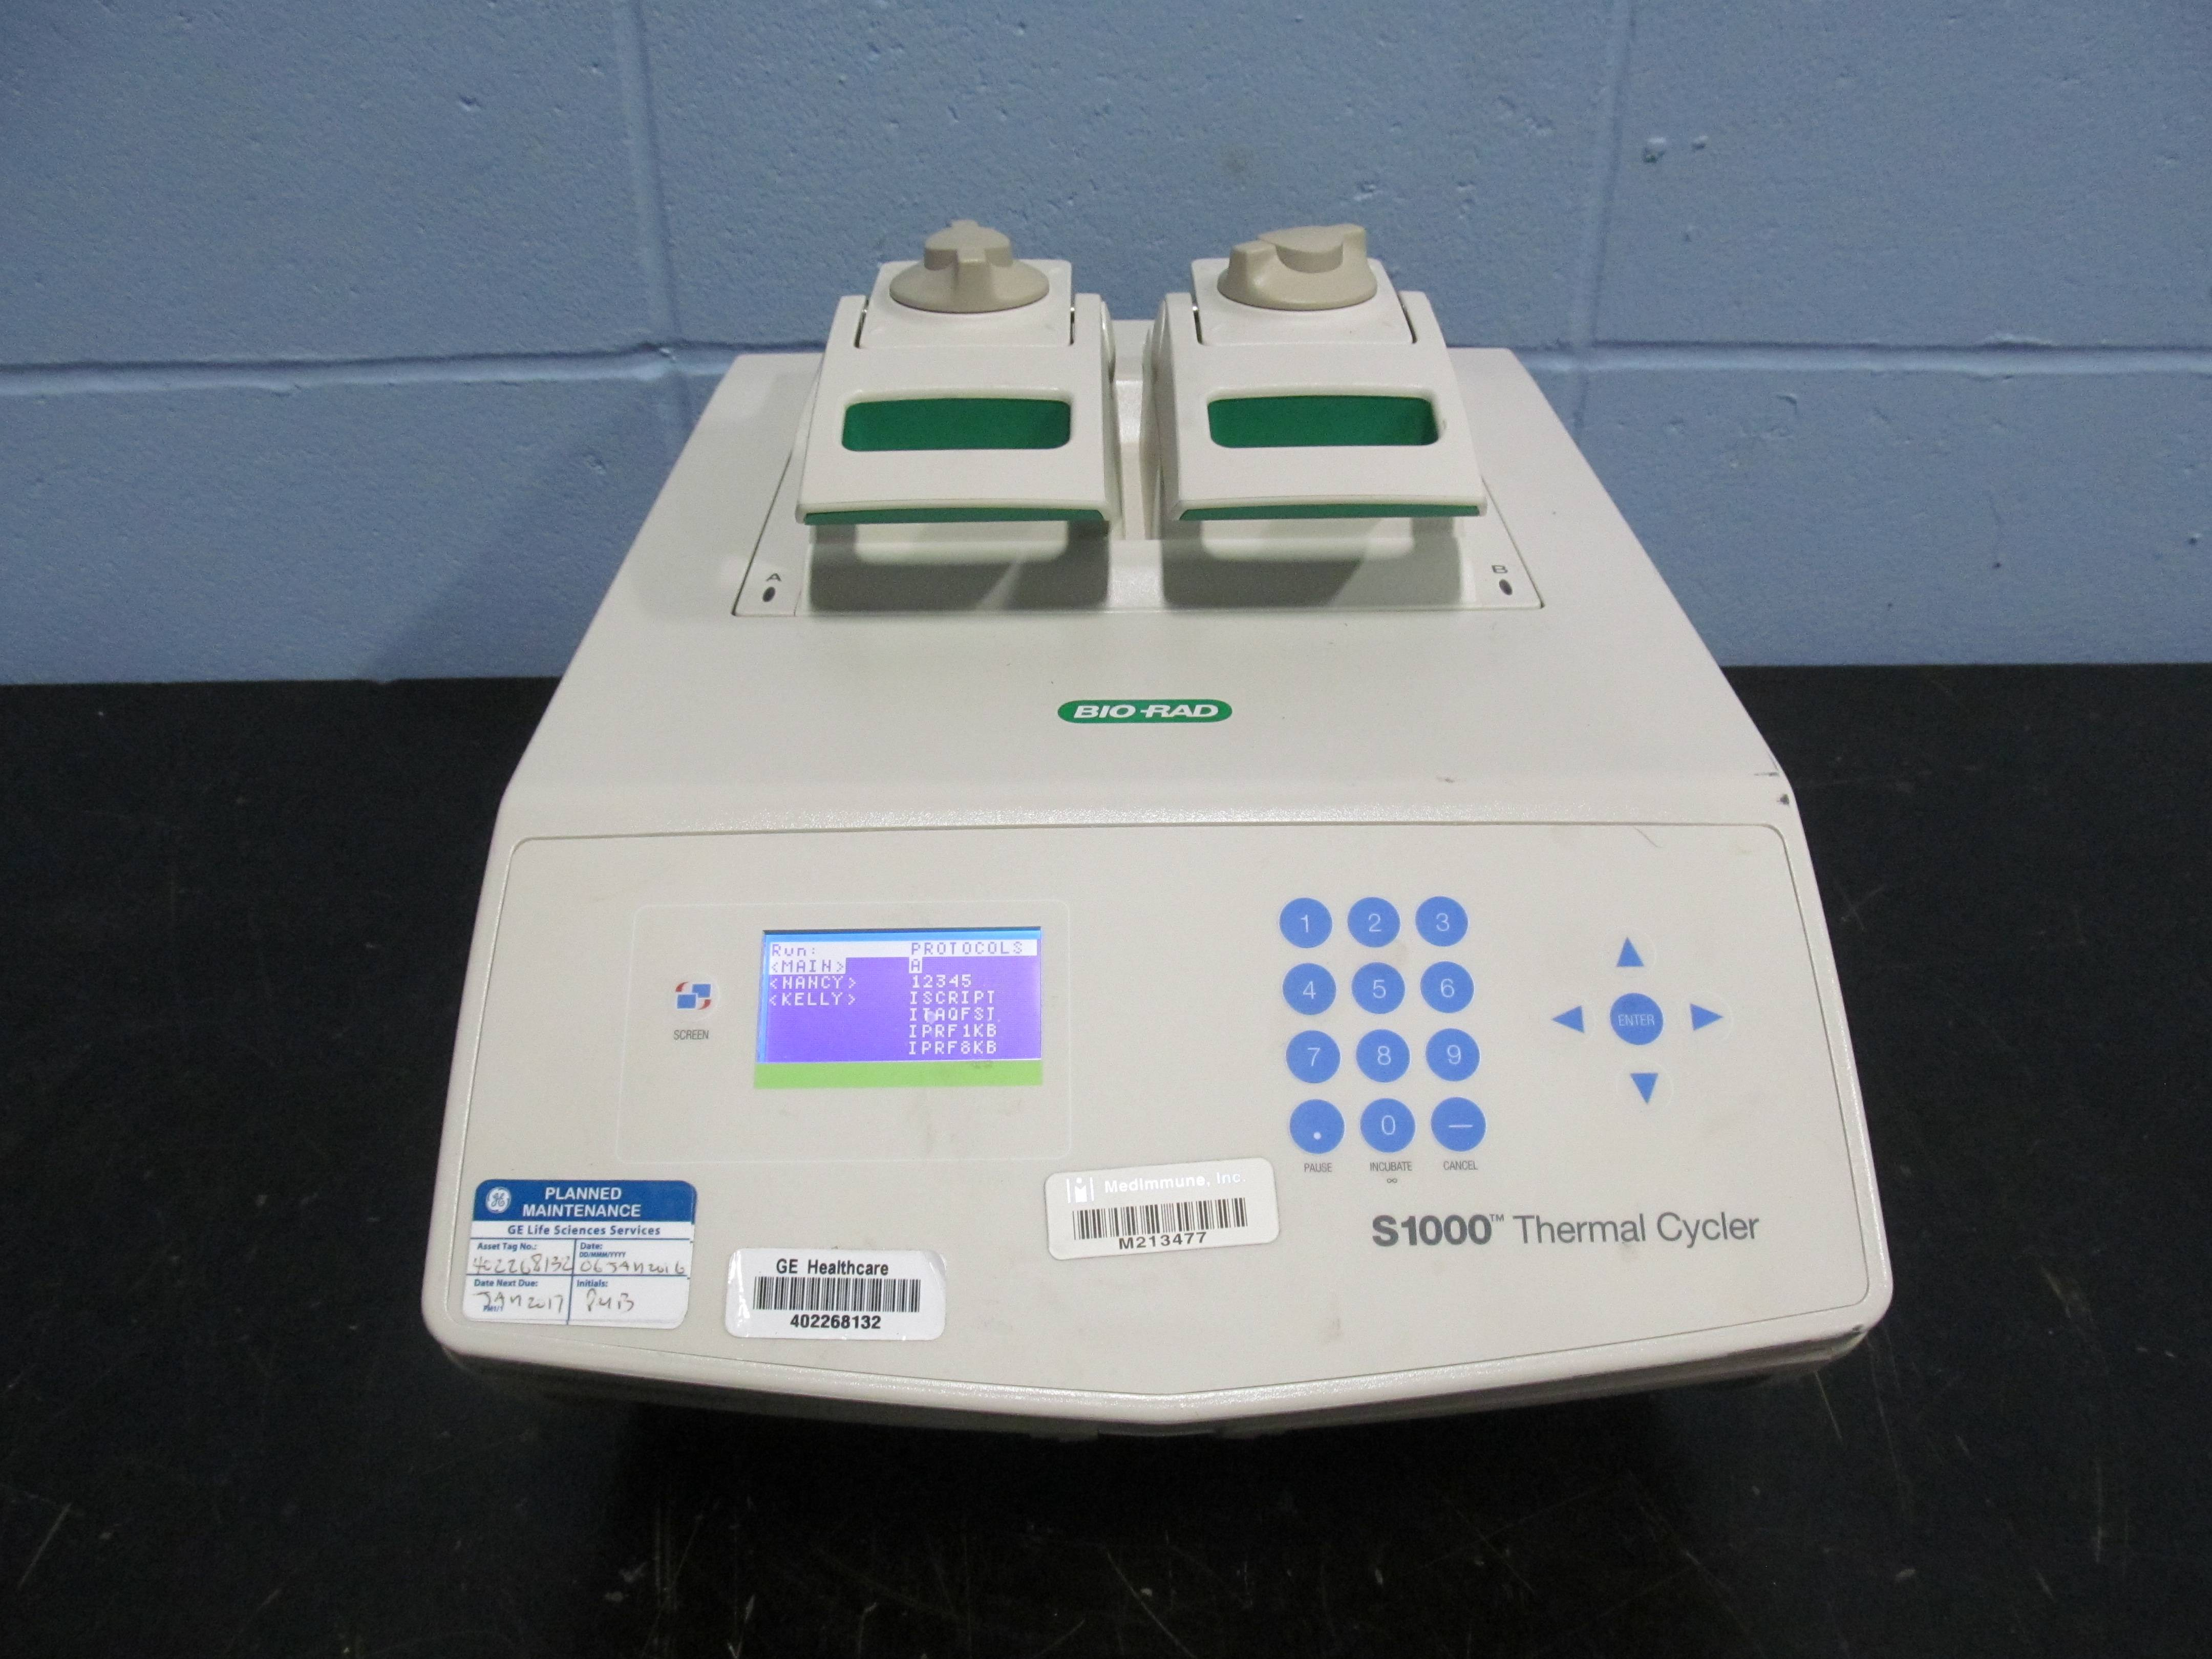 Biorad S1000 Thermal Cycler With 48 48W Fast Reaction Module